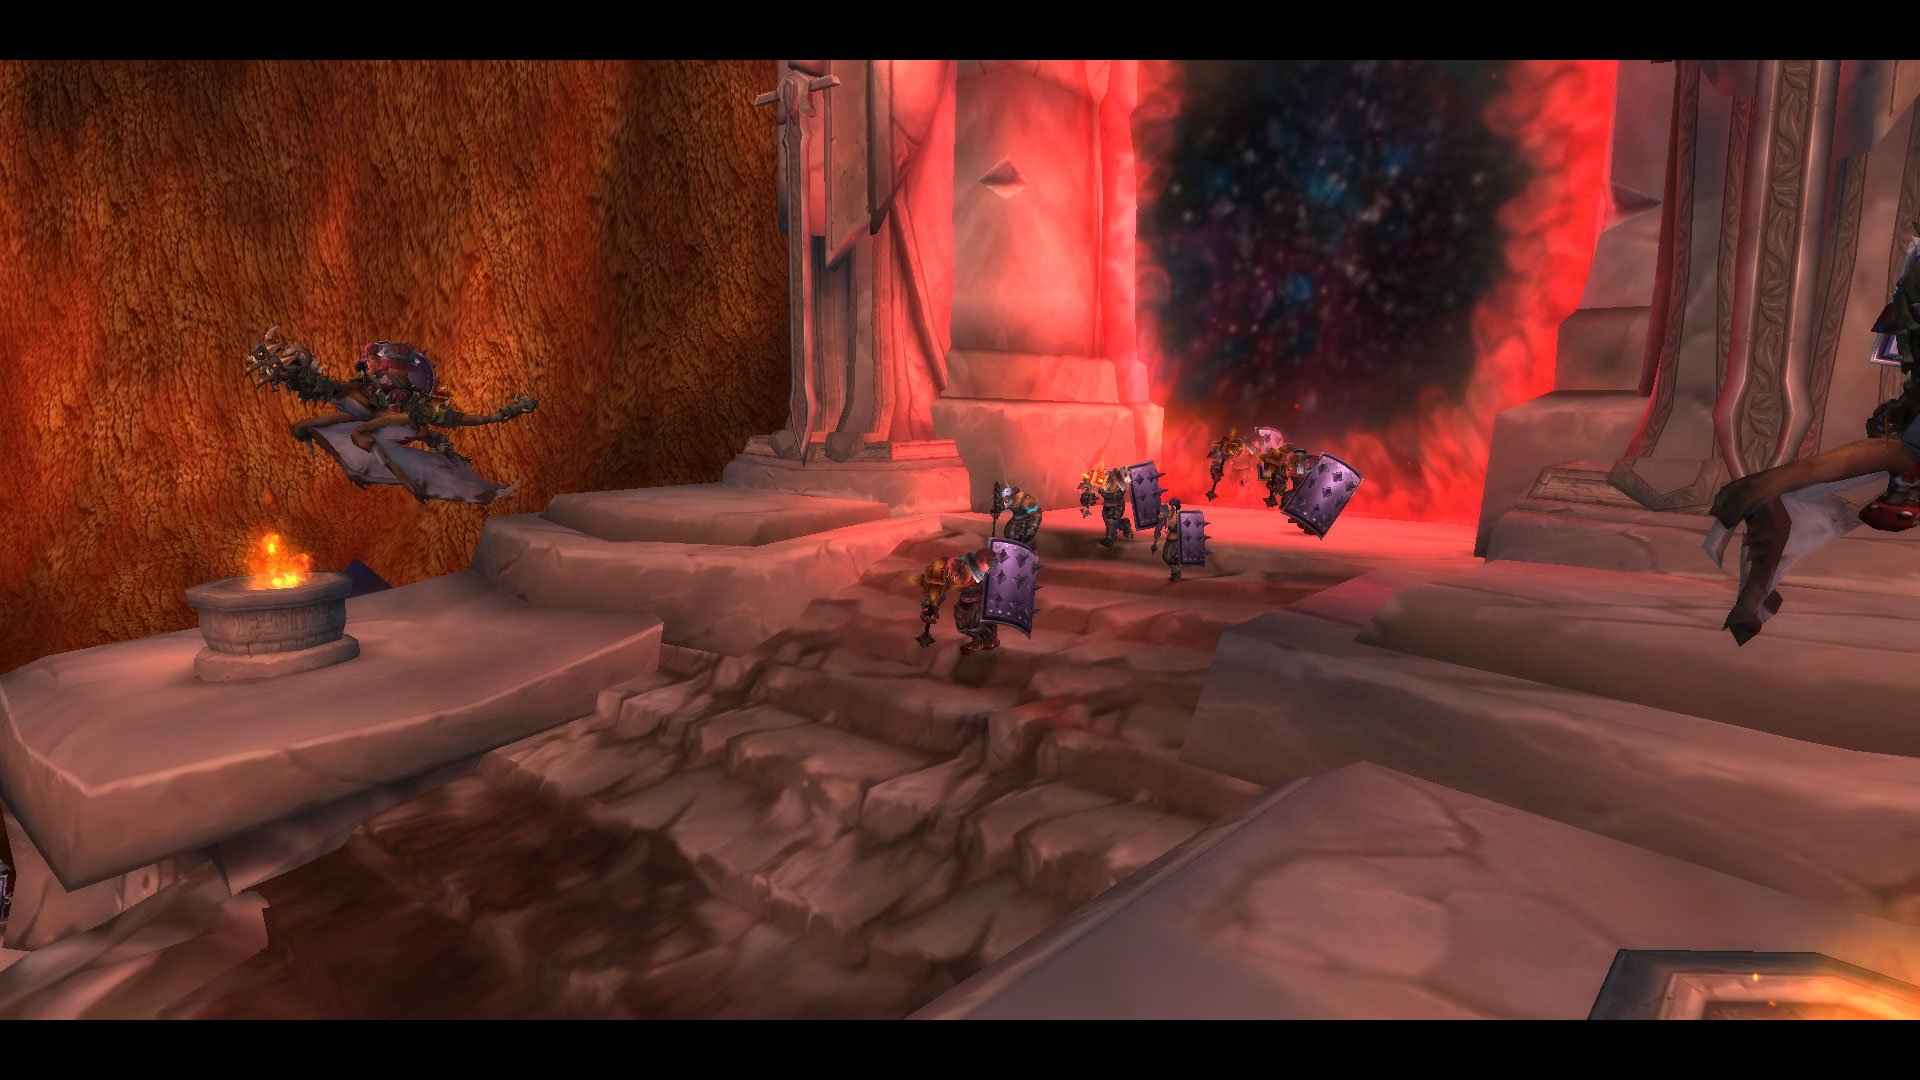 Скриншоты WoW: Warlords of Draenor. Pre-patch. - Изображение 4